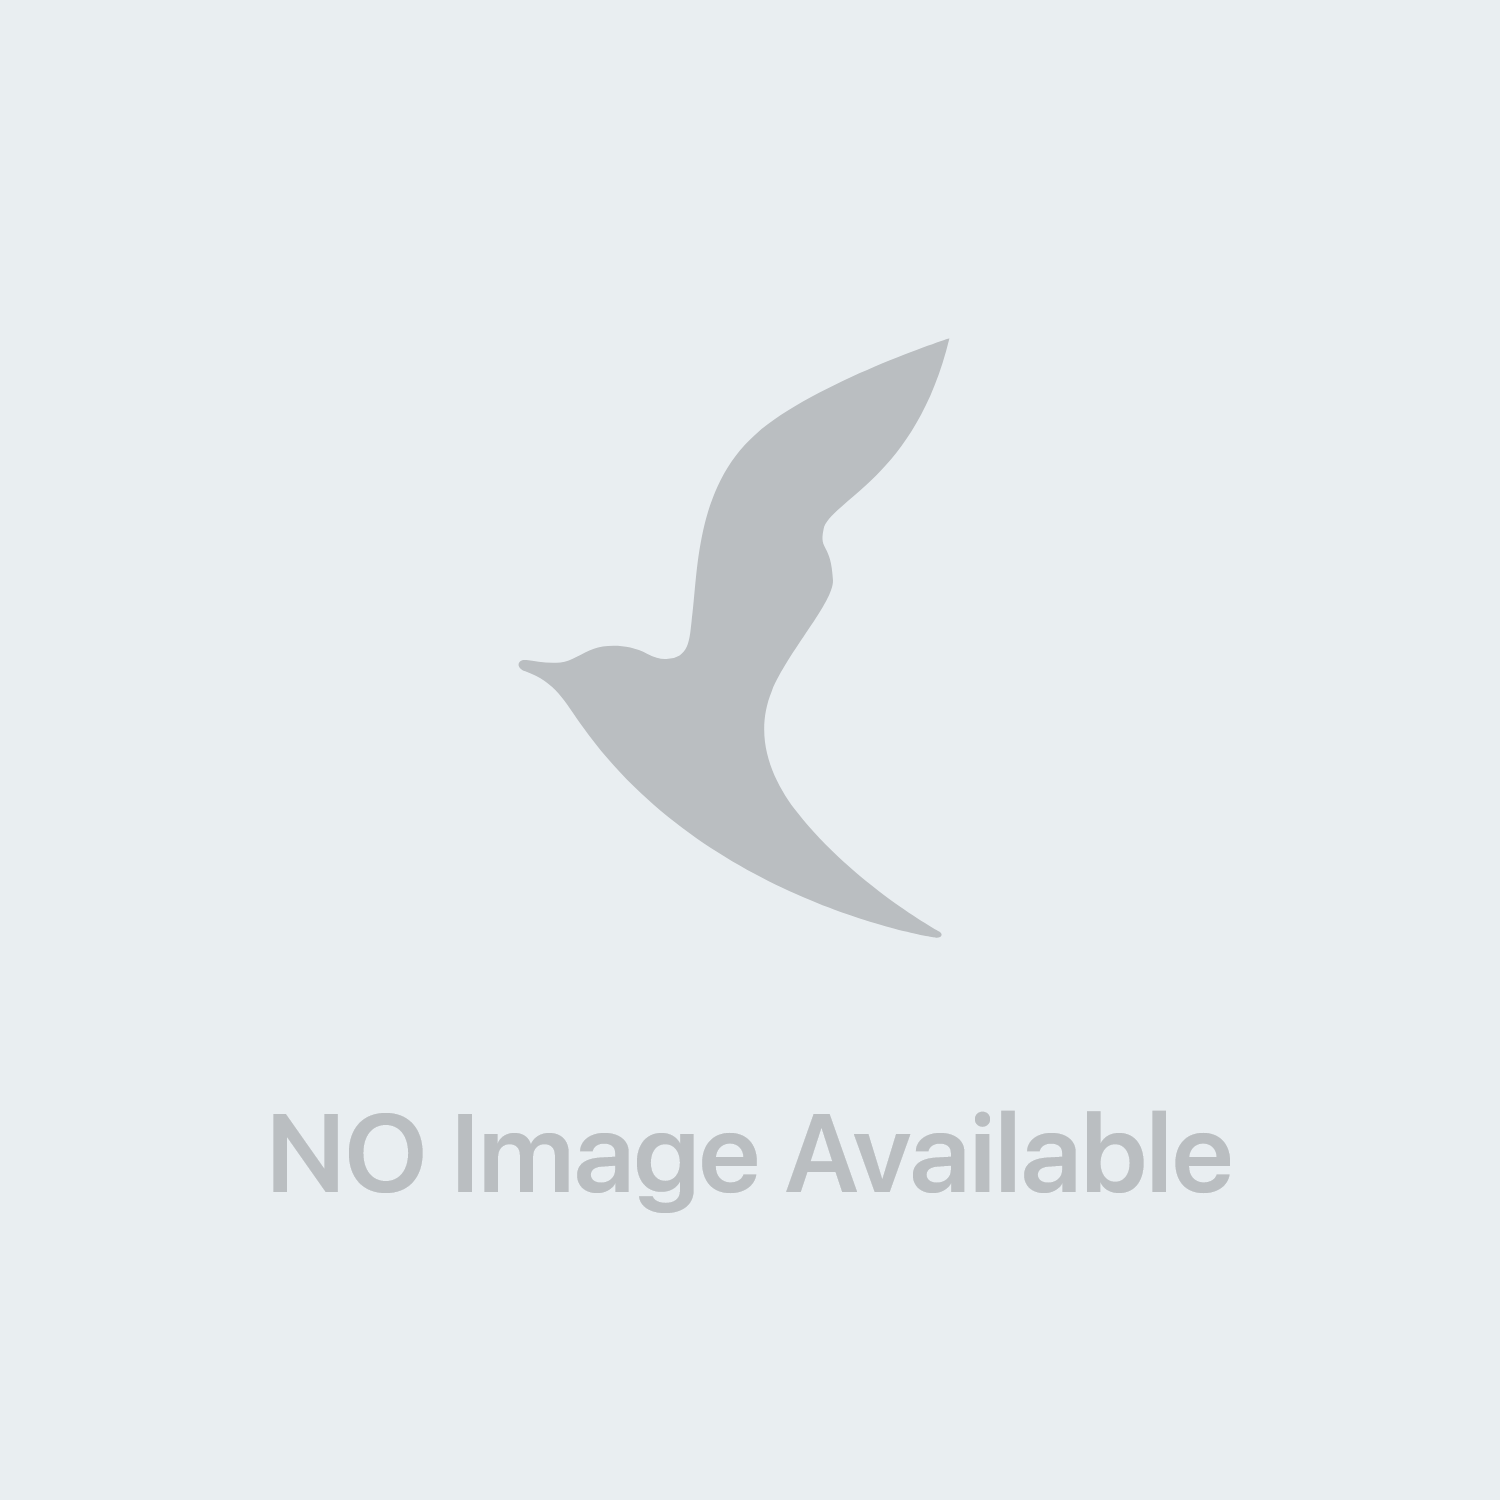 Tachipirina Bambini 500 mg Paracetamolo 10 Supposte